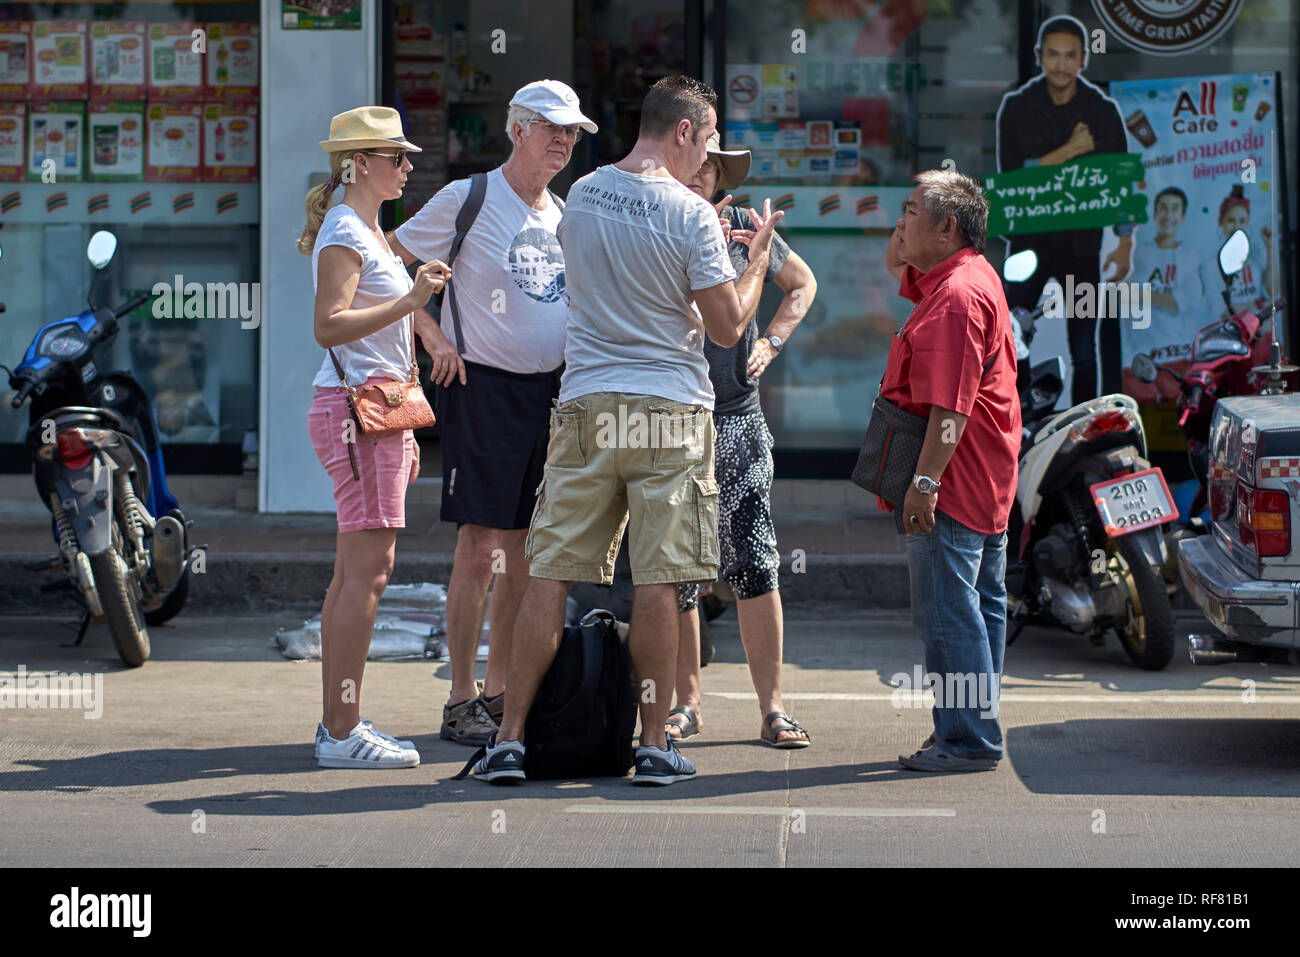 Thailand tourists negotiating fare with Thai taxi driver using fingers to talk. - Stock Image